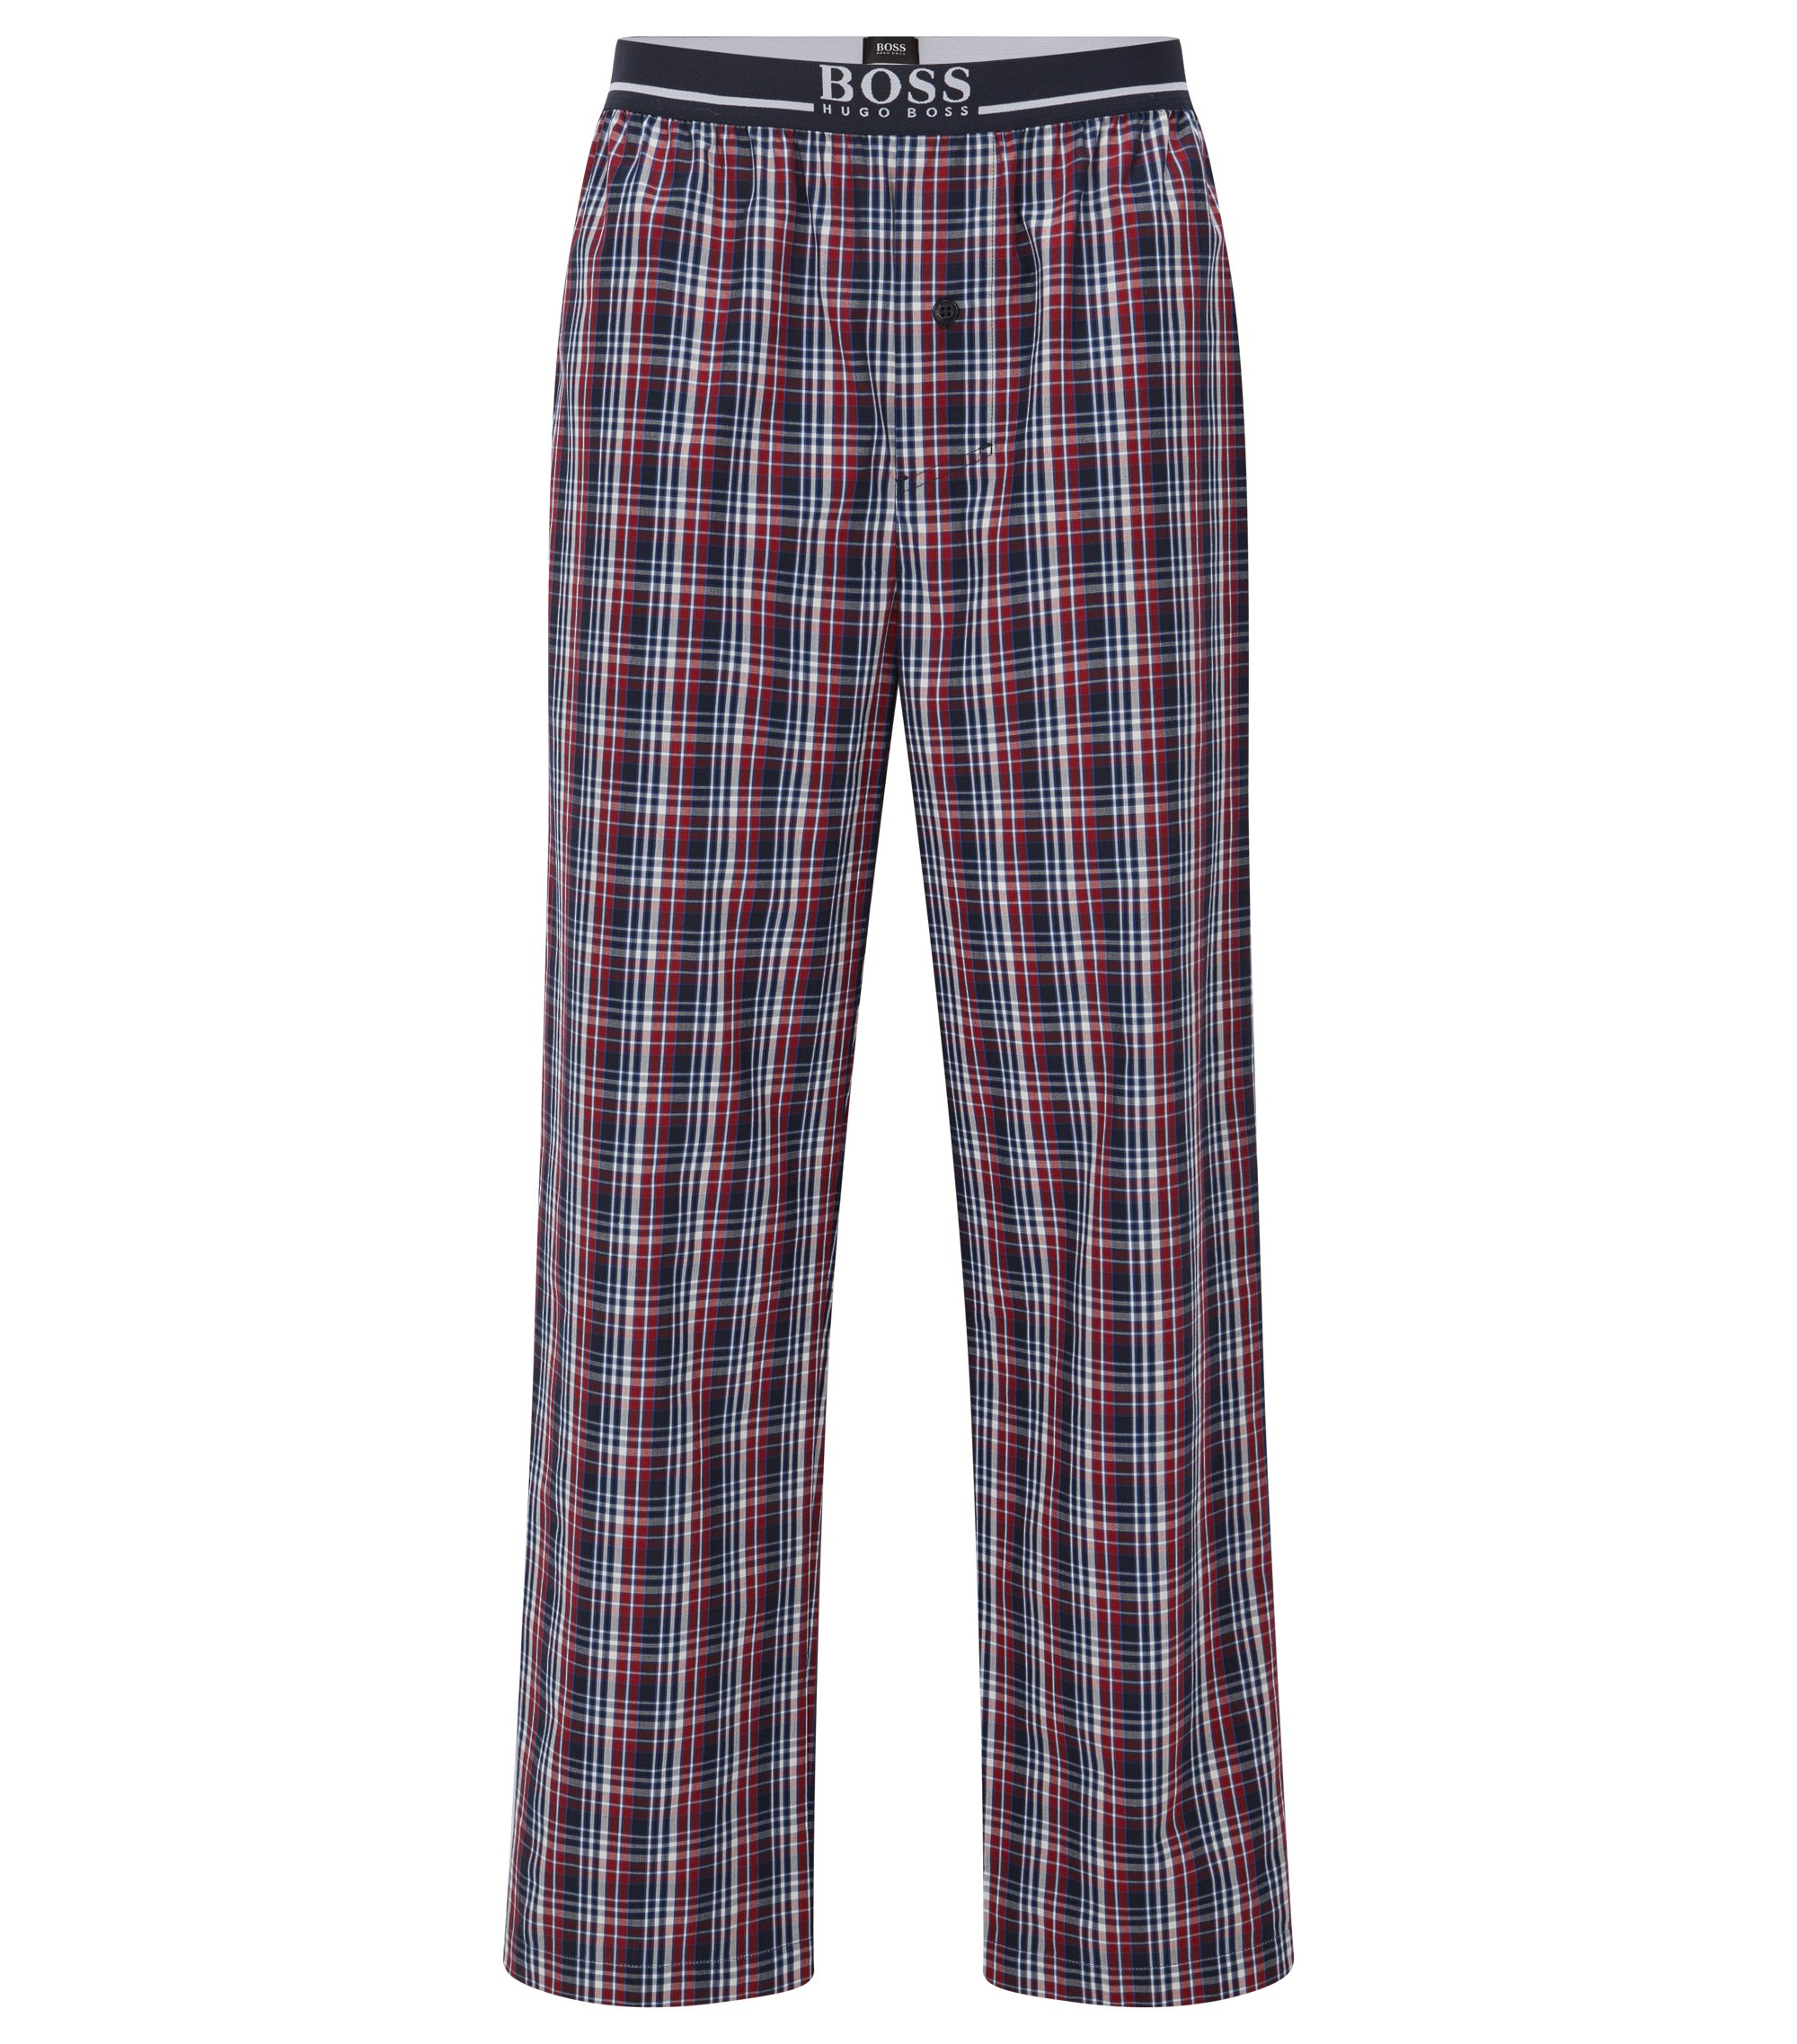 Pyjama bottoms in cotton poplin, Patterned